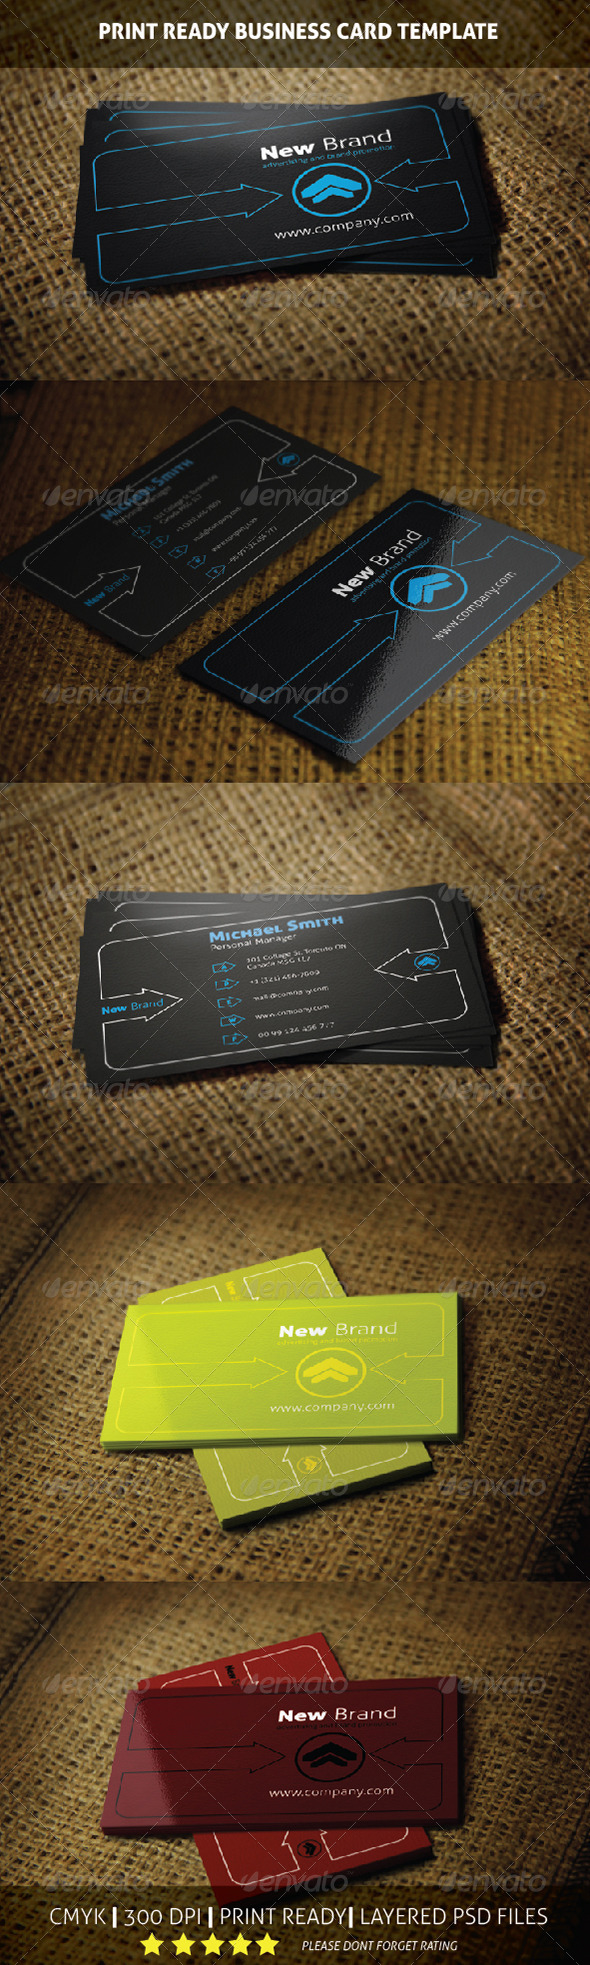 GraphicRiver New Brand Business Card Template 5999922